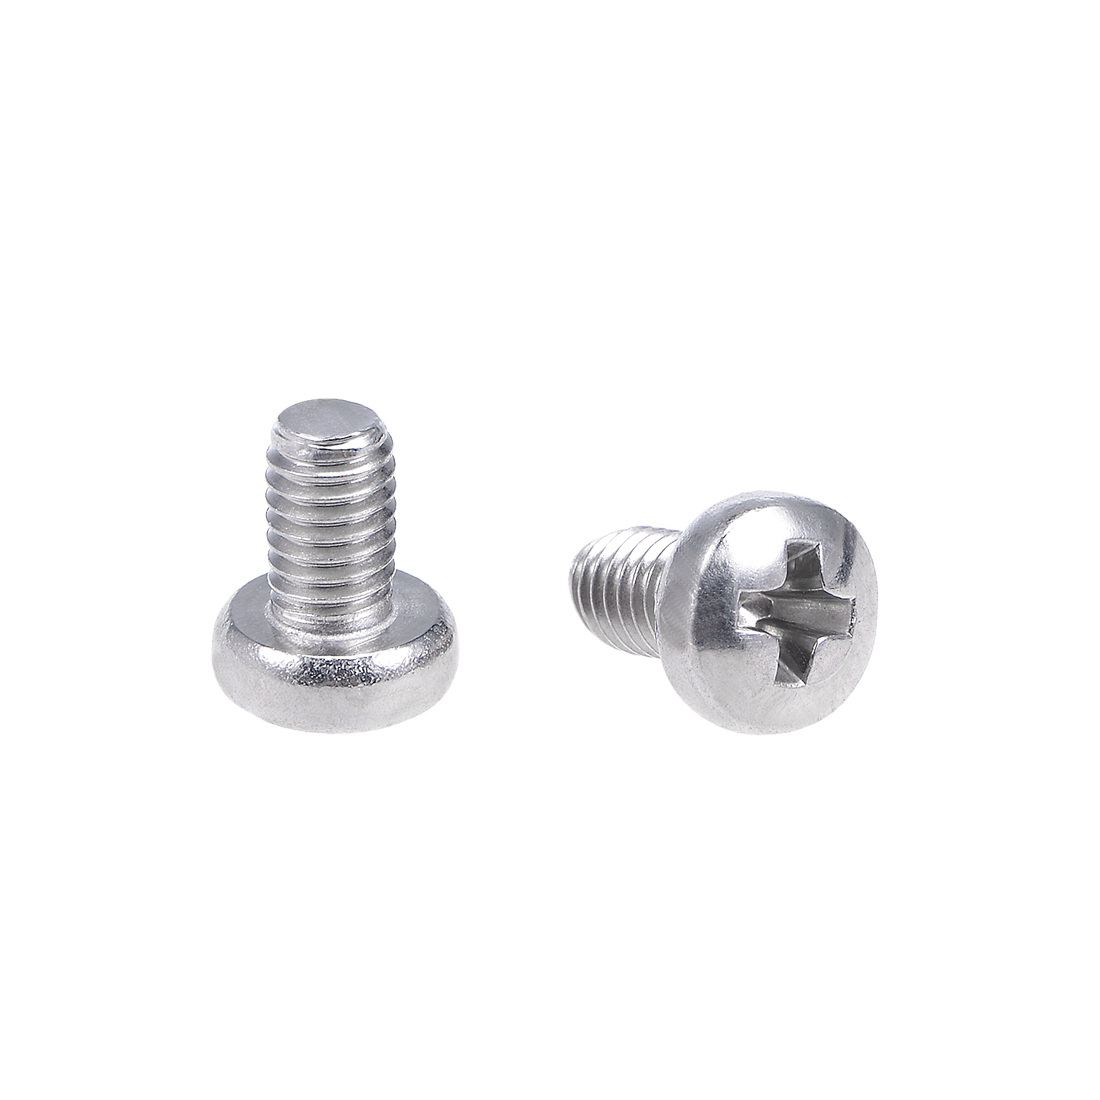 uxcell Machine Screws Cross Head Screw 304 Stainless Steel Fasteners Bolts <font><b>M3x5mm</b></font> 100Pcs image